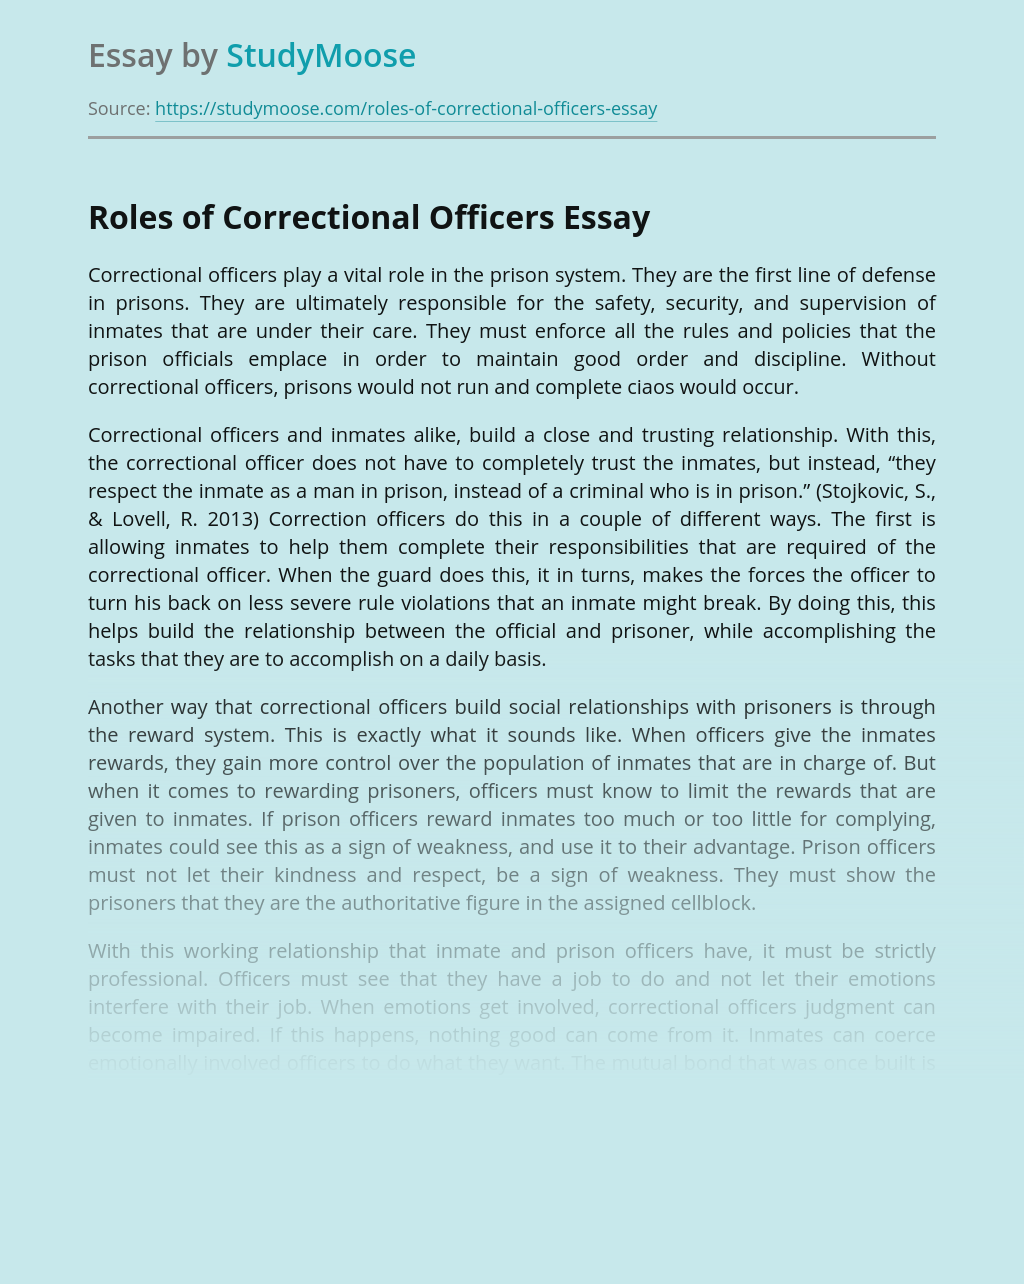 Role of Correctional Officers and Their Professional Behavior